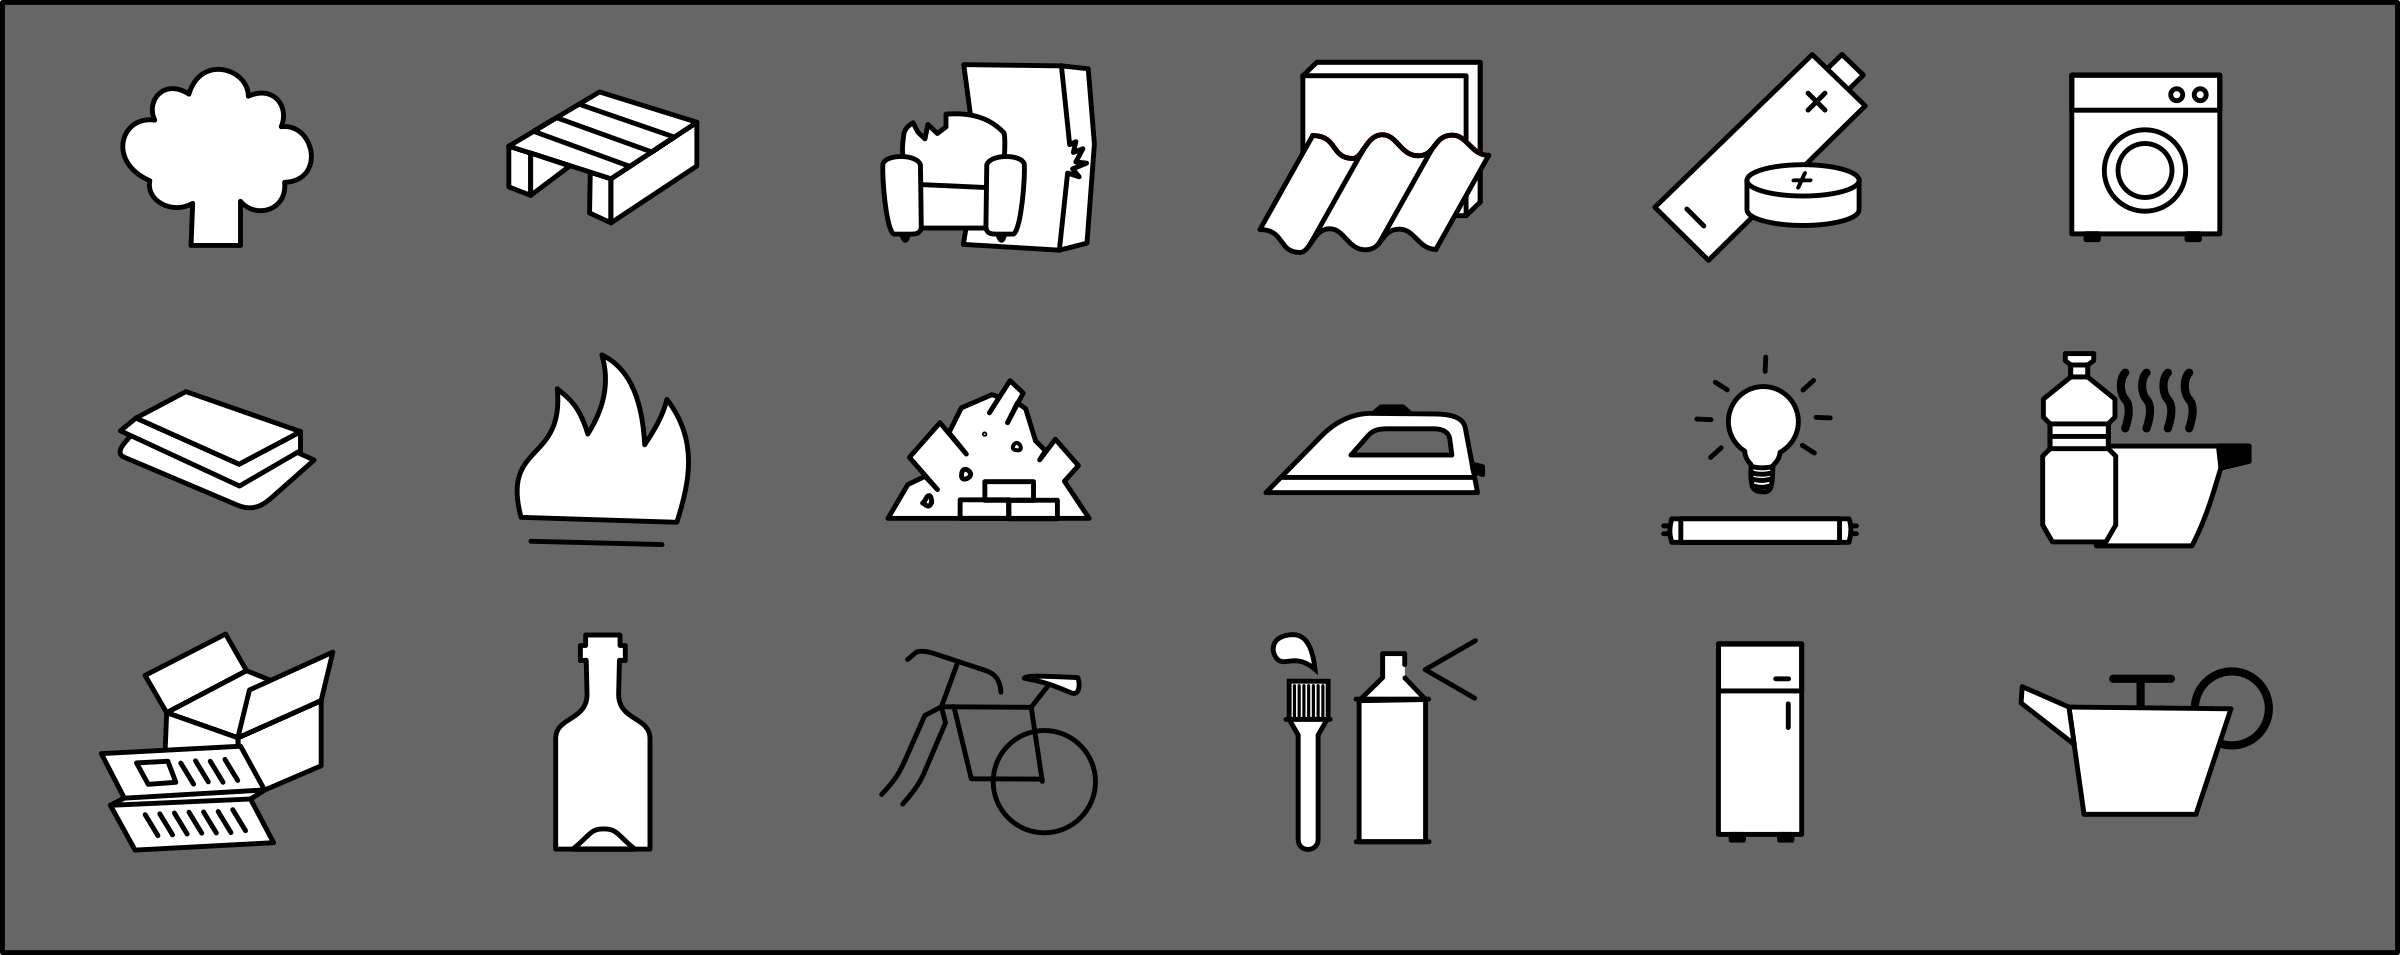 Rubbish types symbols by cyberscooty